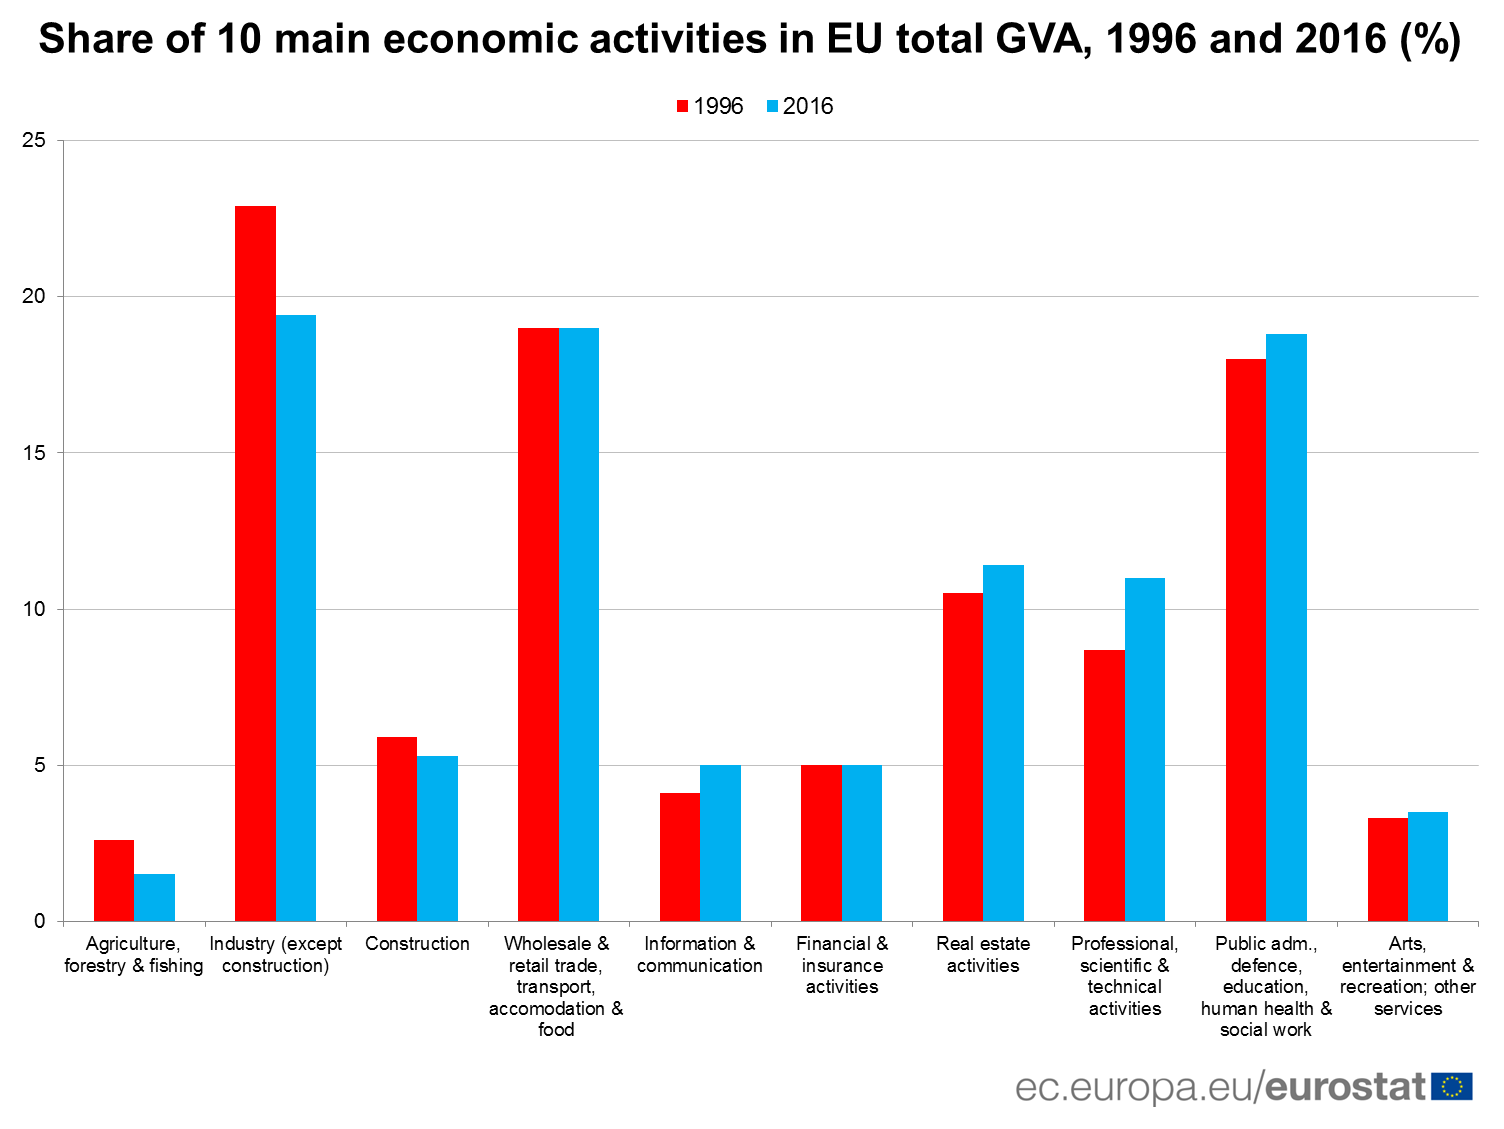 Share of 10 main economic activities in EU total GVA, 1996 and 2016 (%)